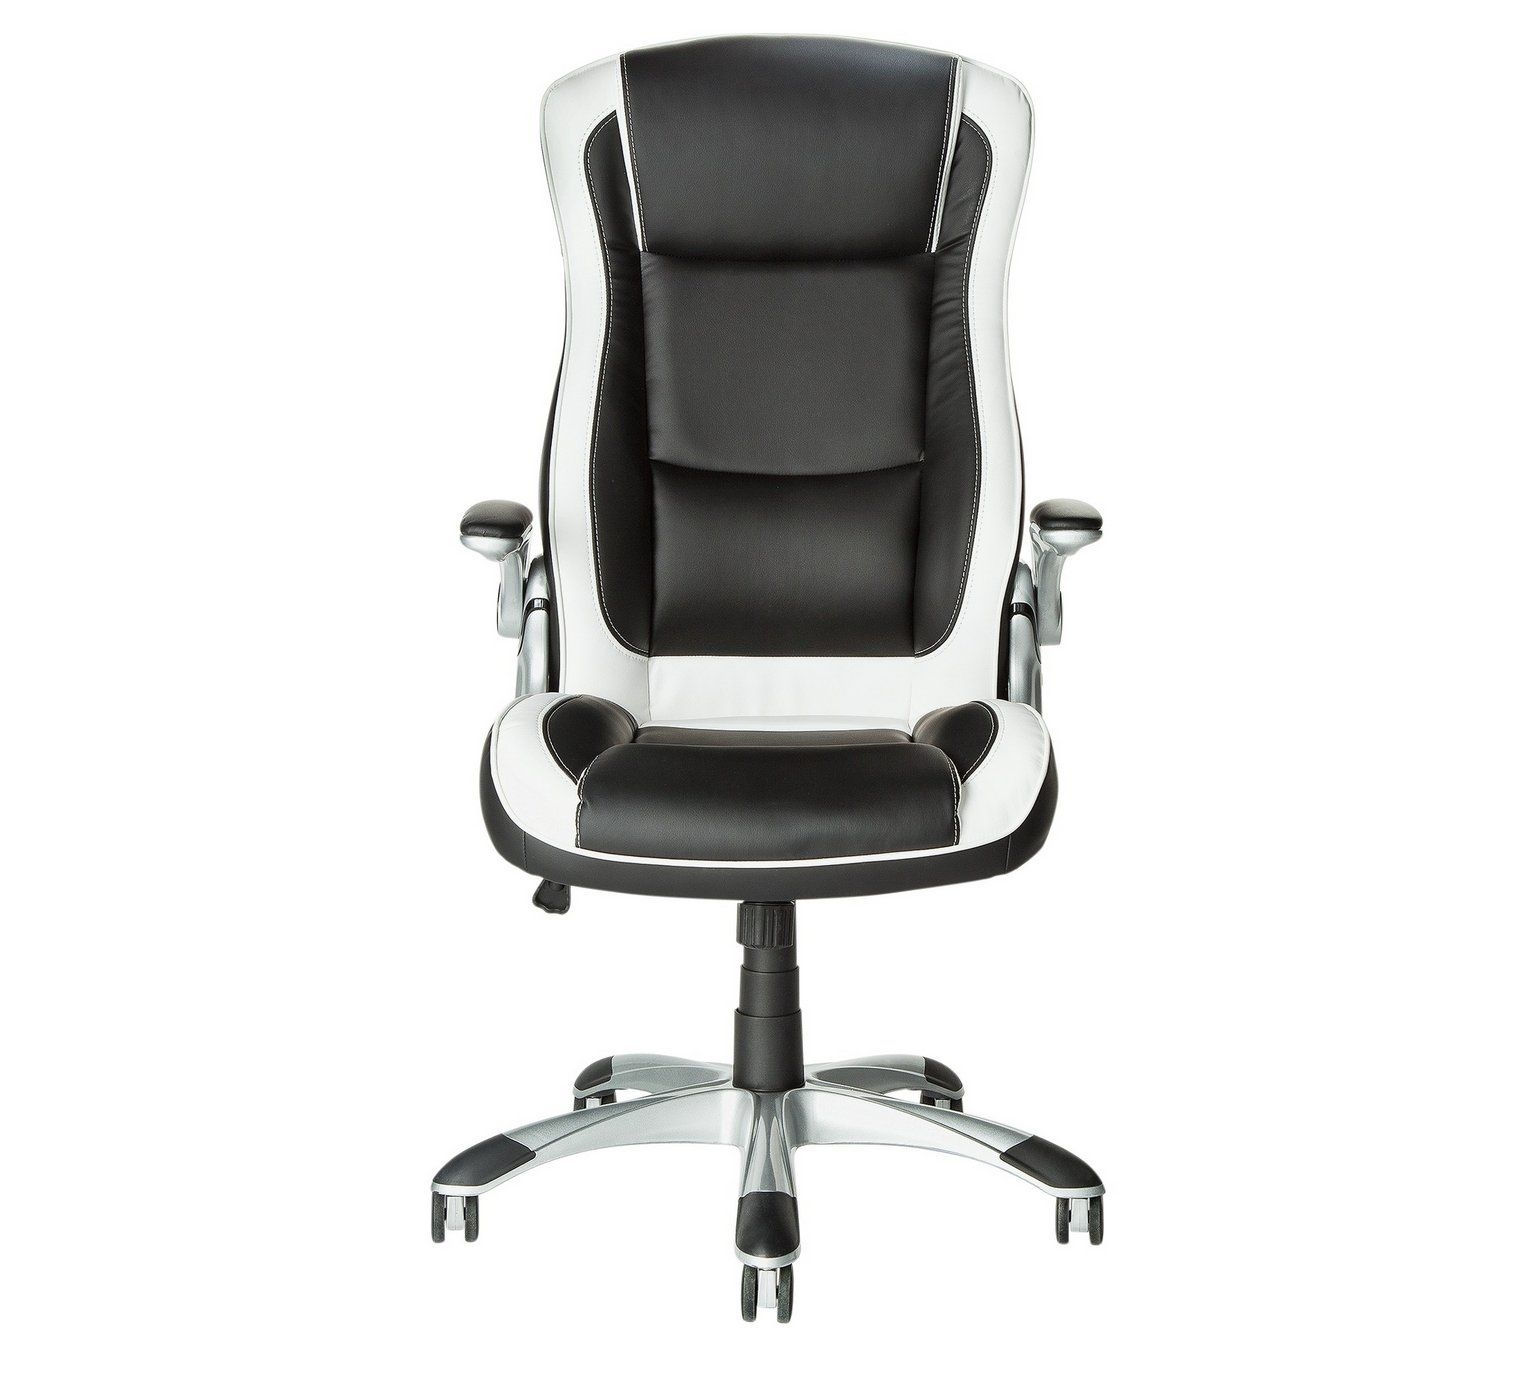 Buy HOME Dexter Height Adjustable Office Chair - Black/White at ...